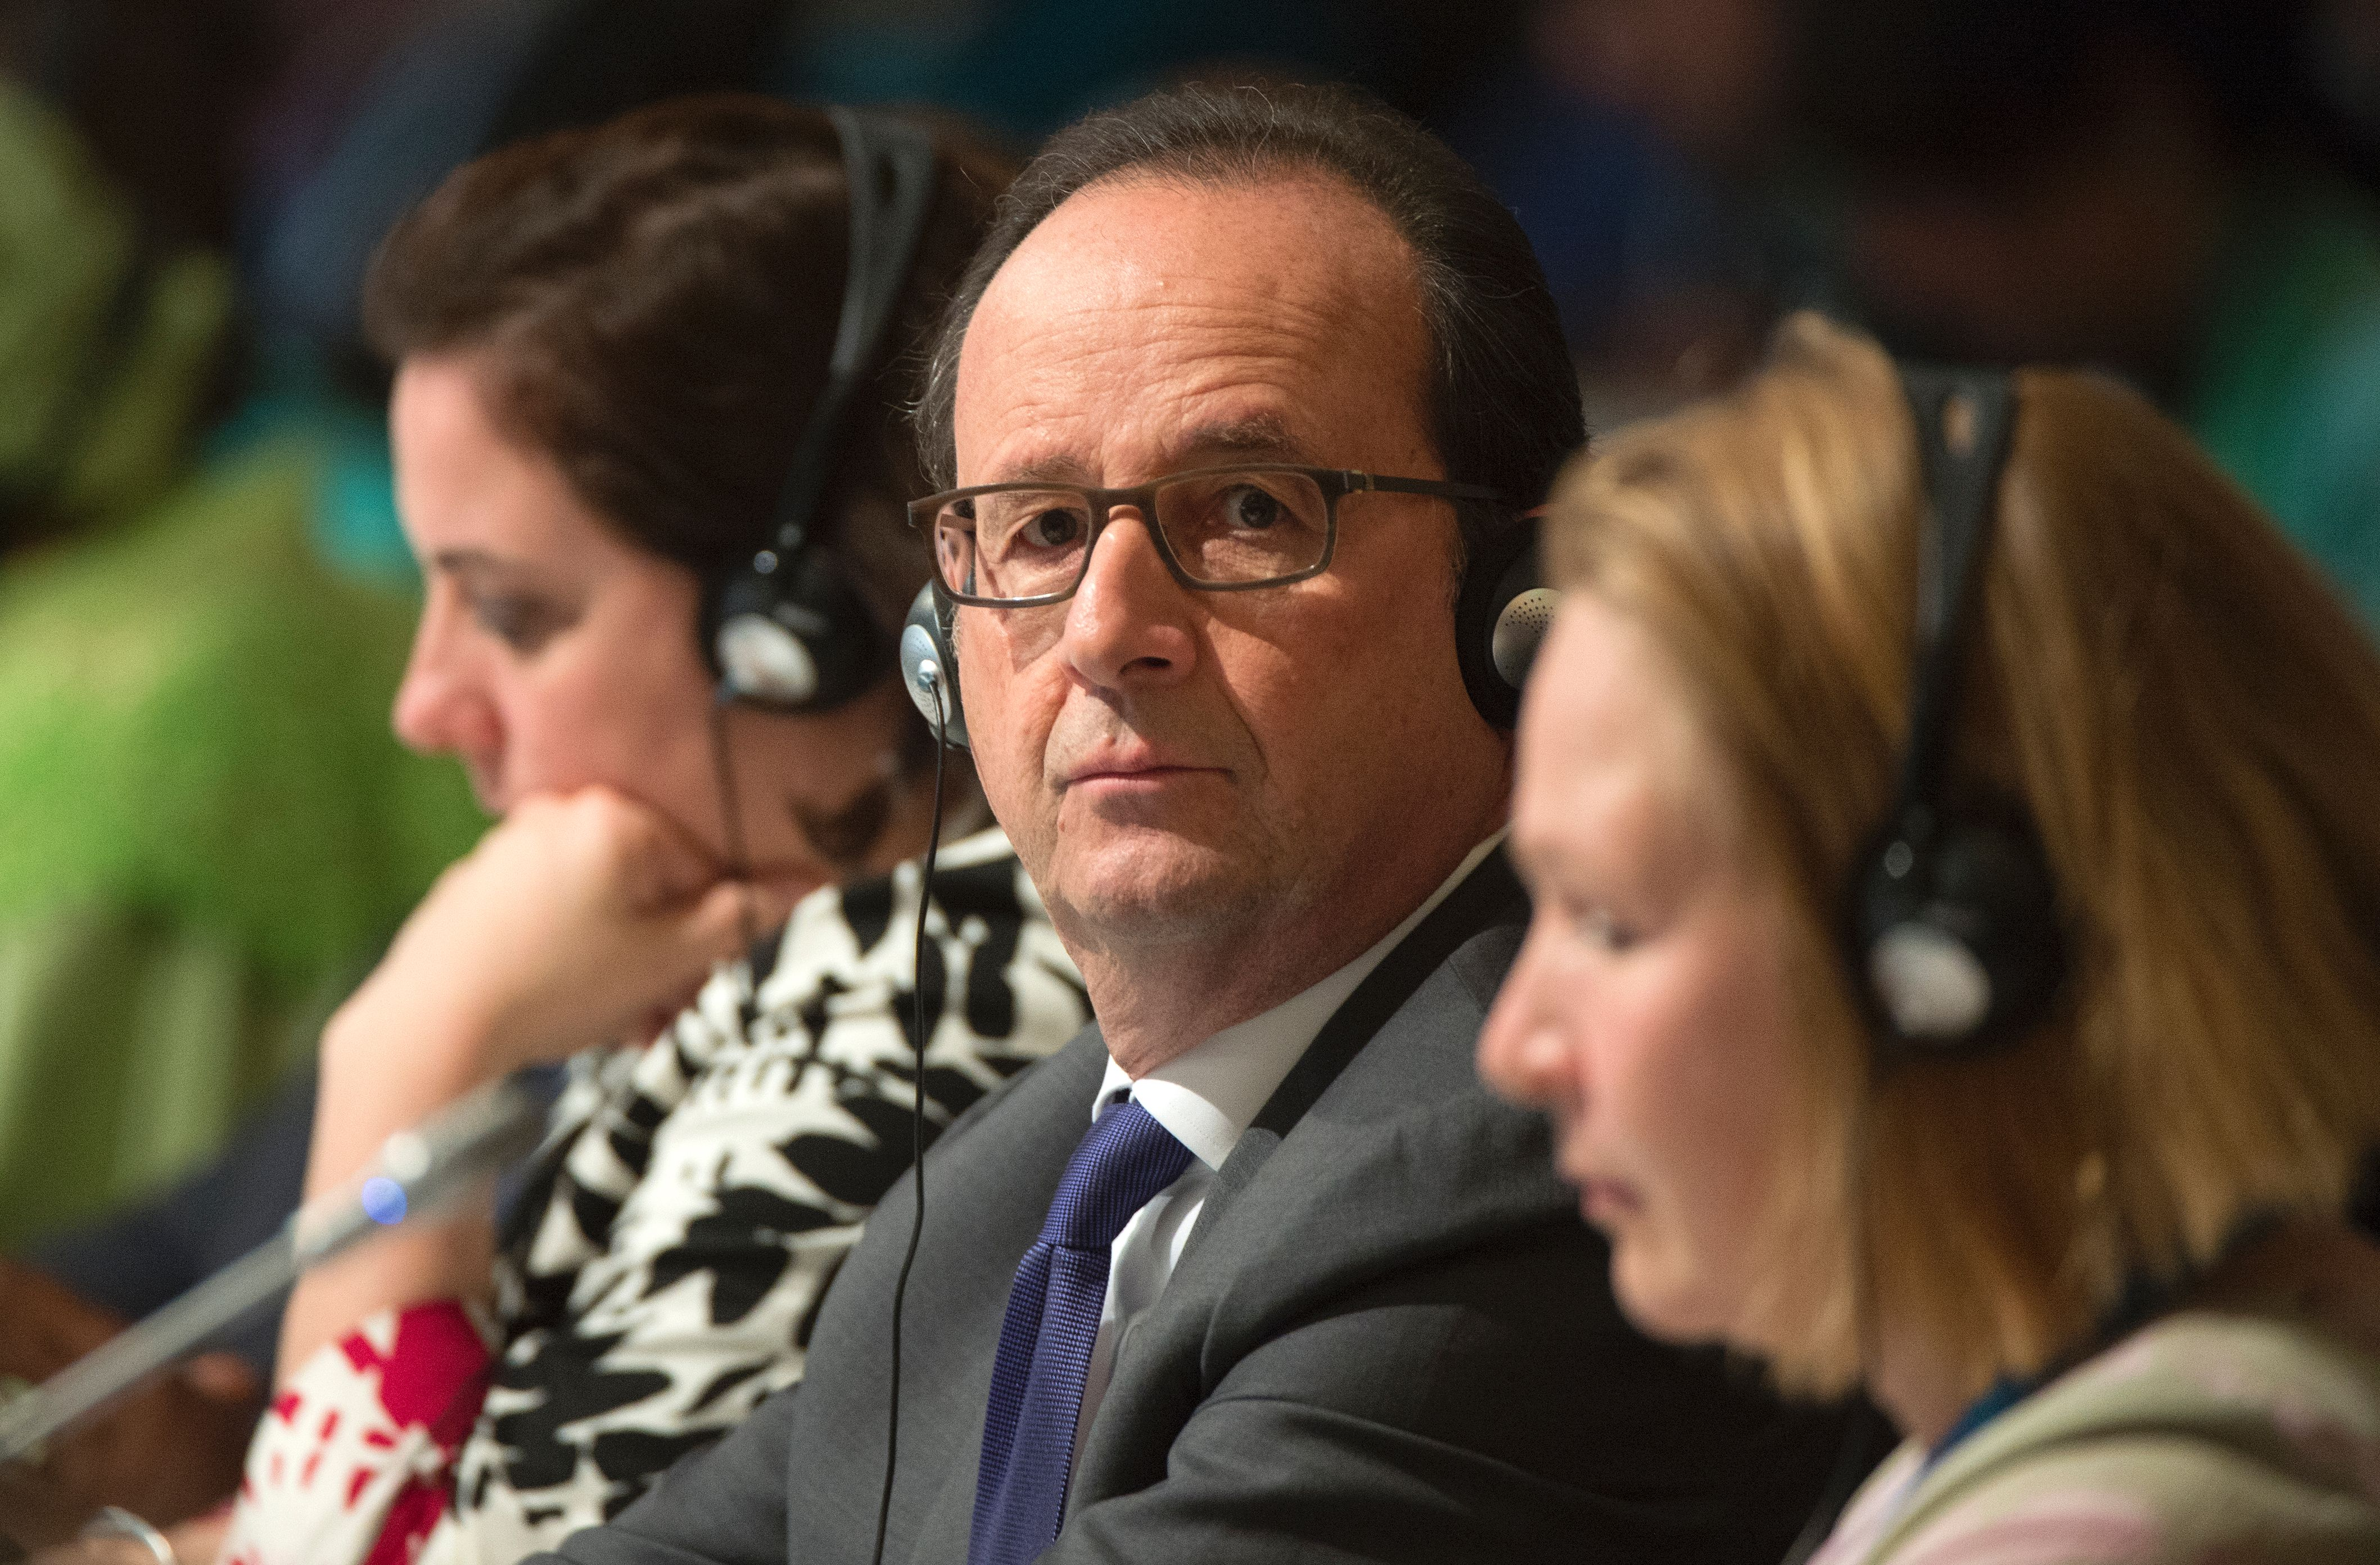 French President Francois Hollande looks on during the COP22 Climate Change Conference in Marrakesh on November 15, 2016.